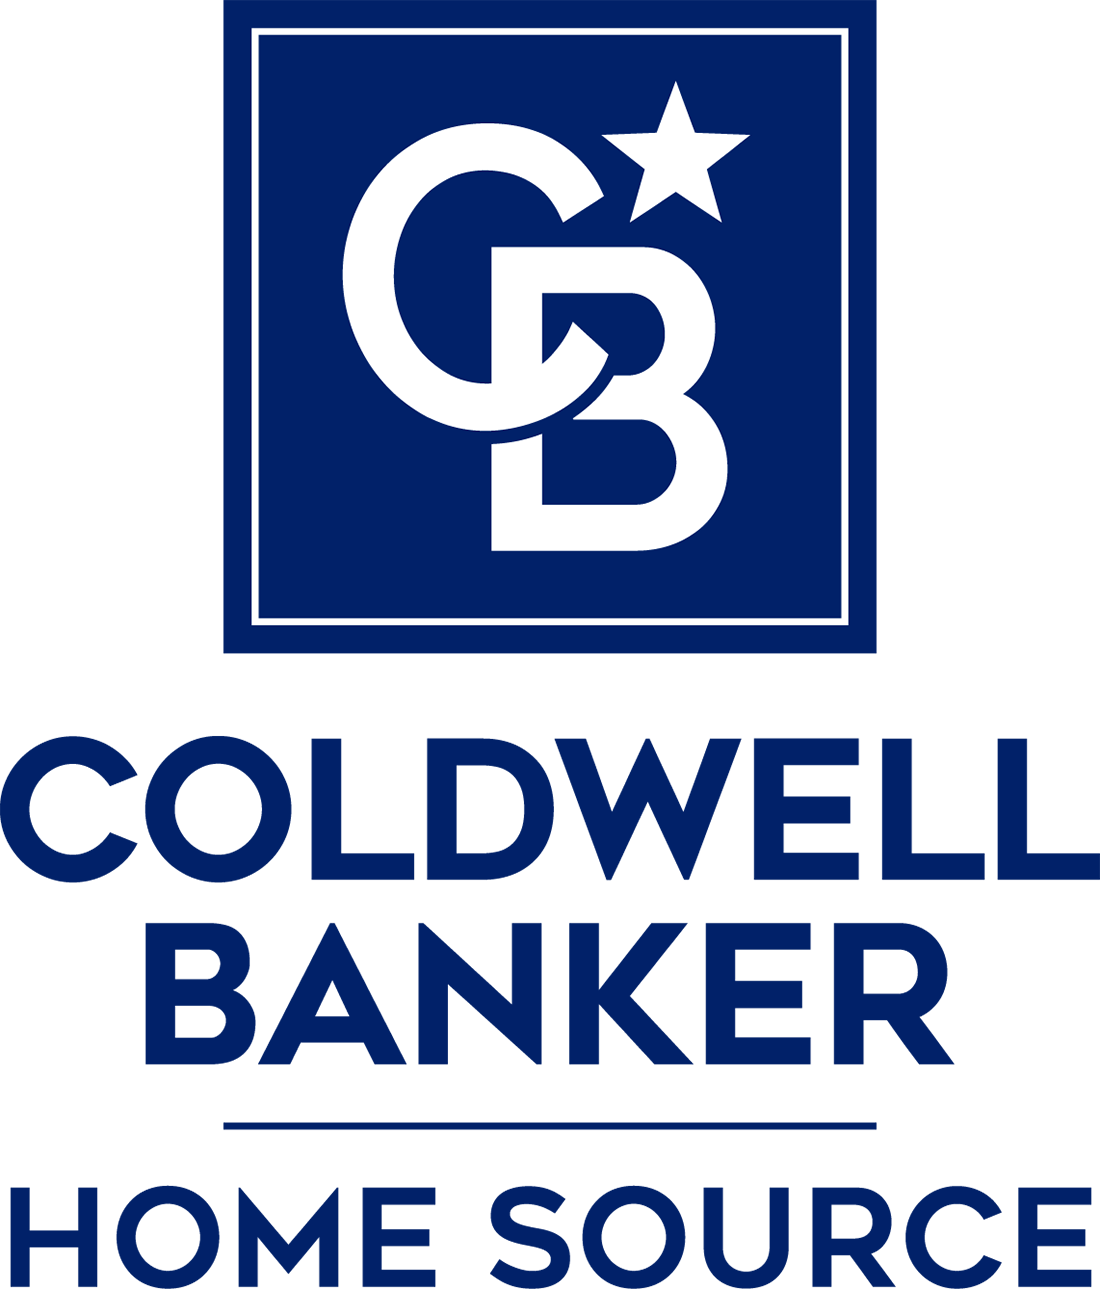 Tony Smith - Coldwell Banker Home Source Logo